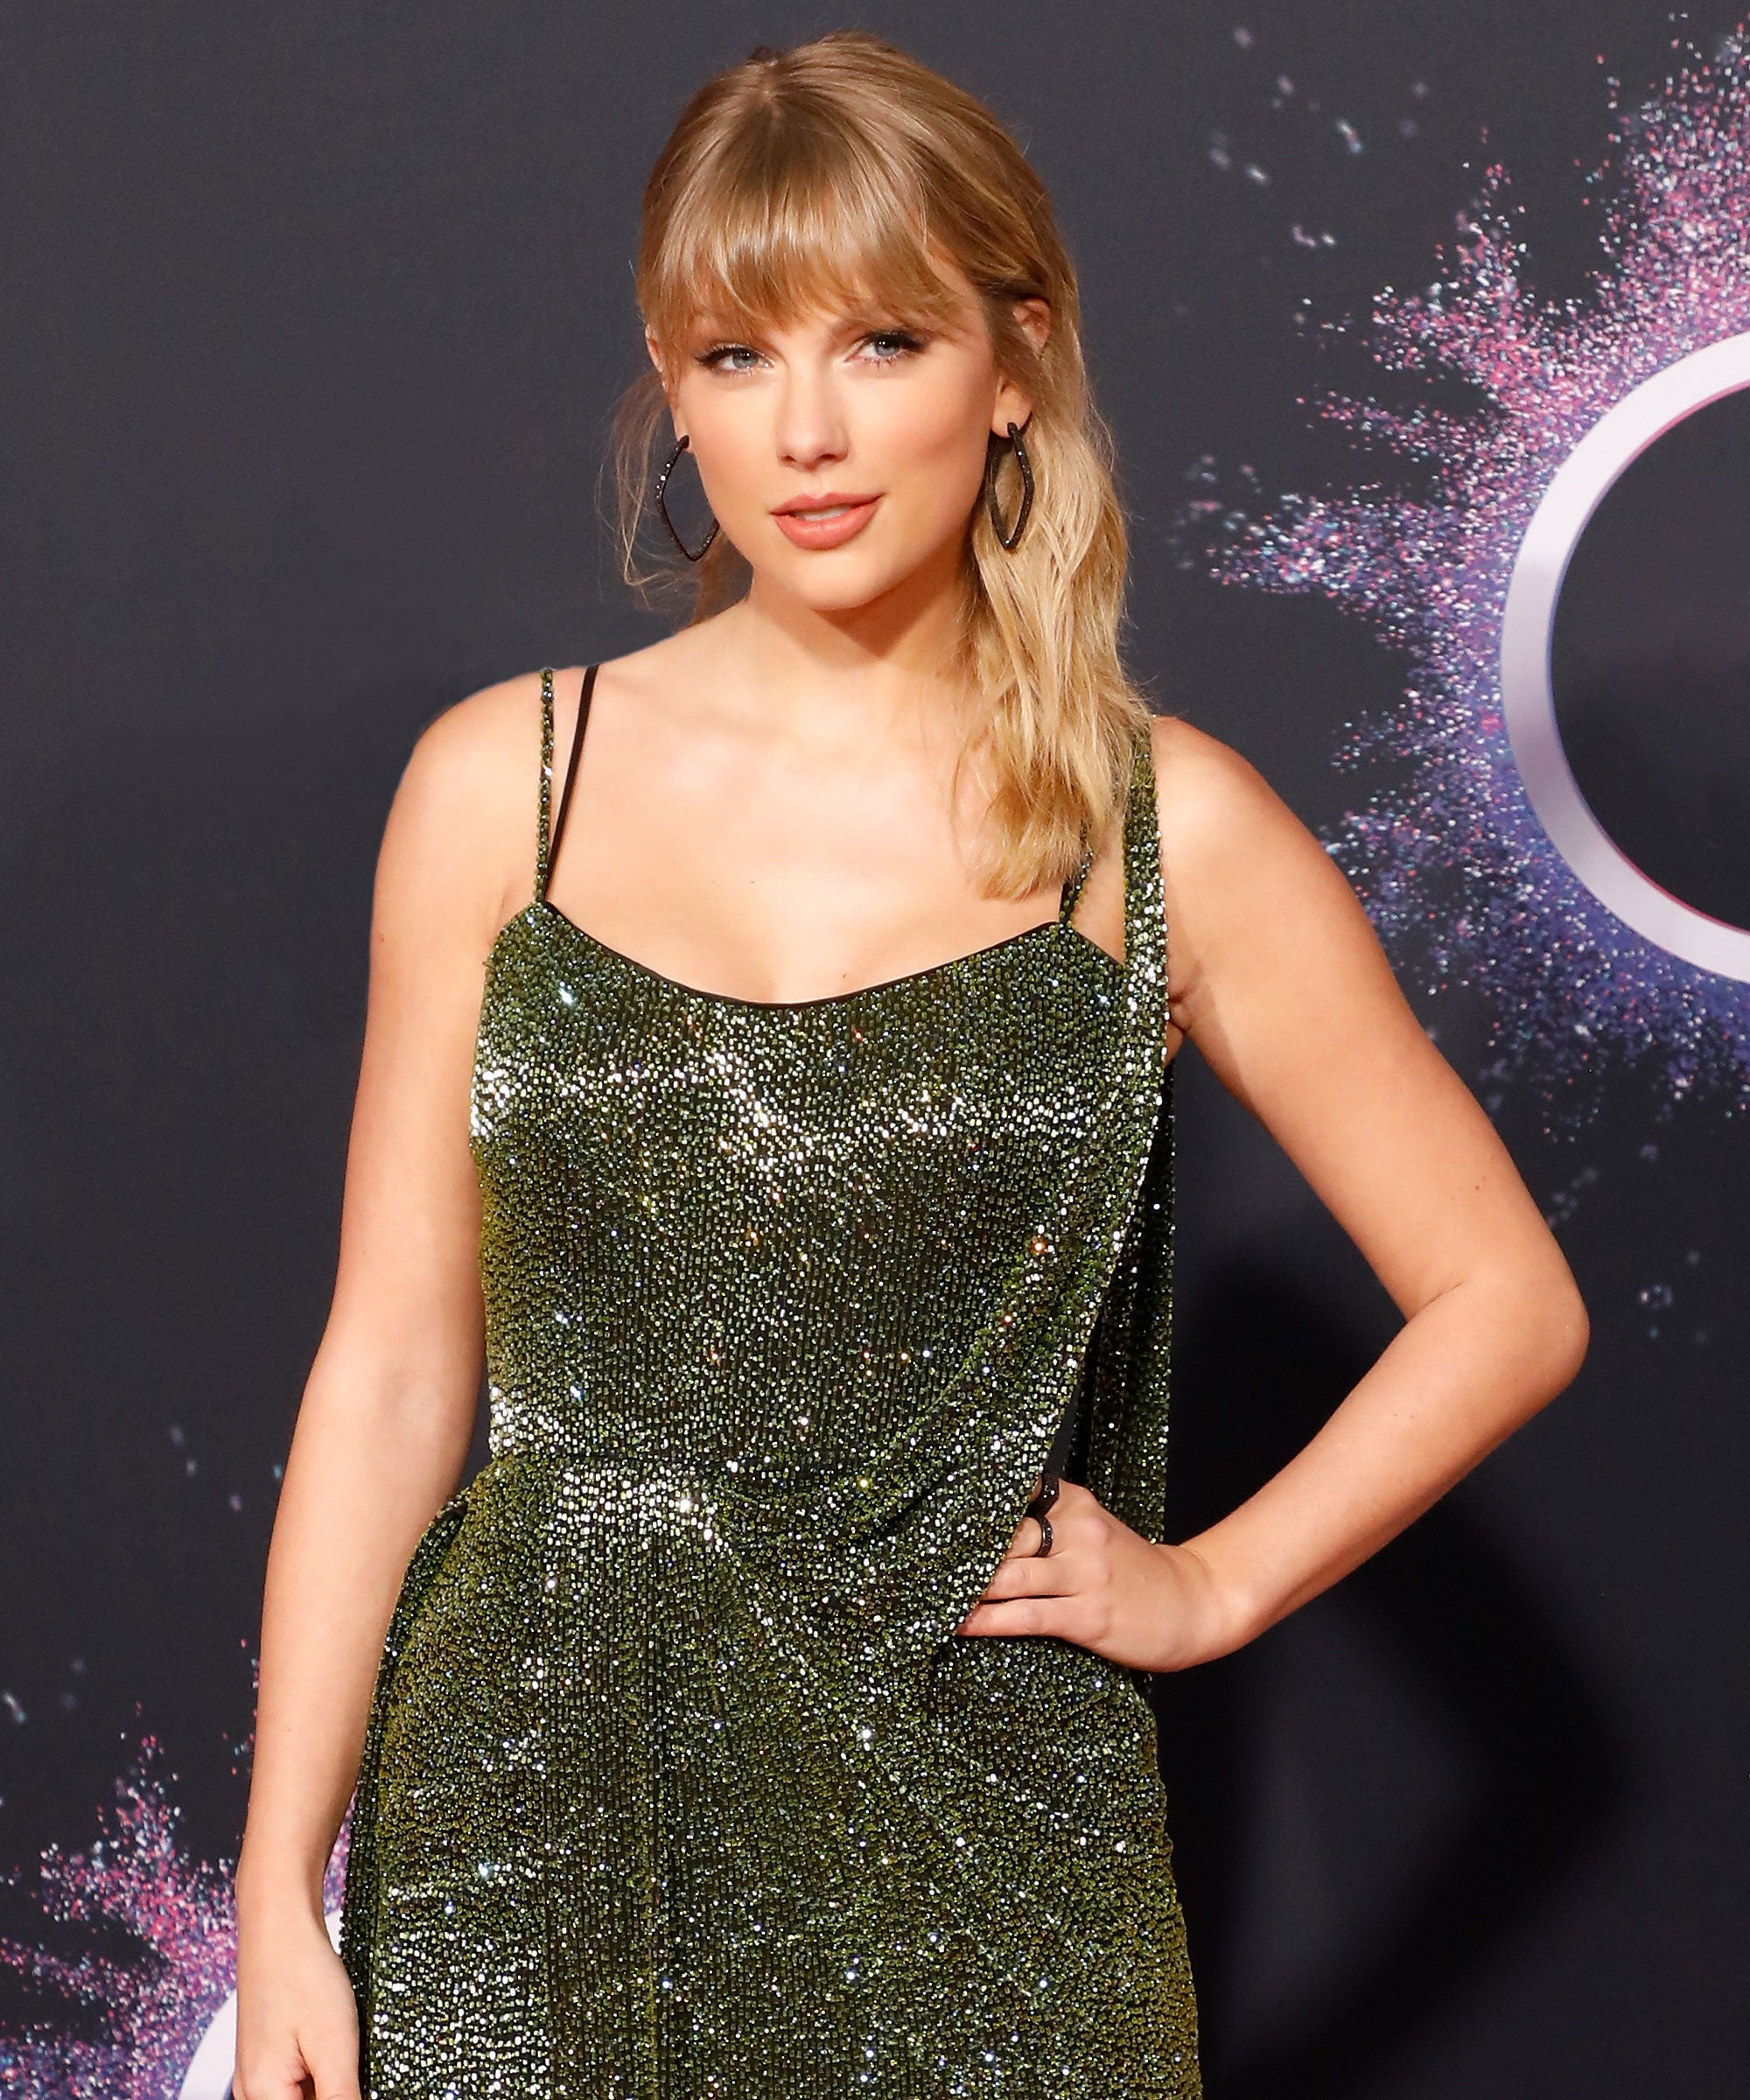 Taylor Swift Covers British Vogue In Bored Holiday Look